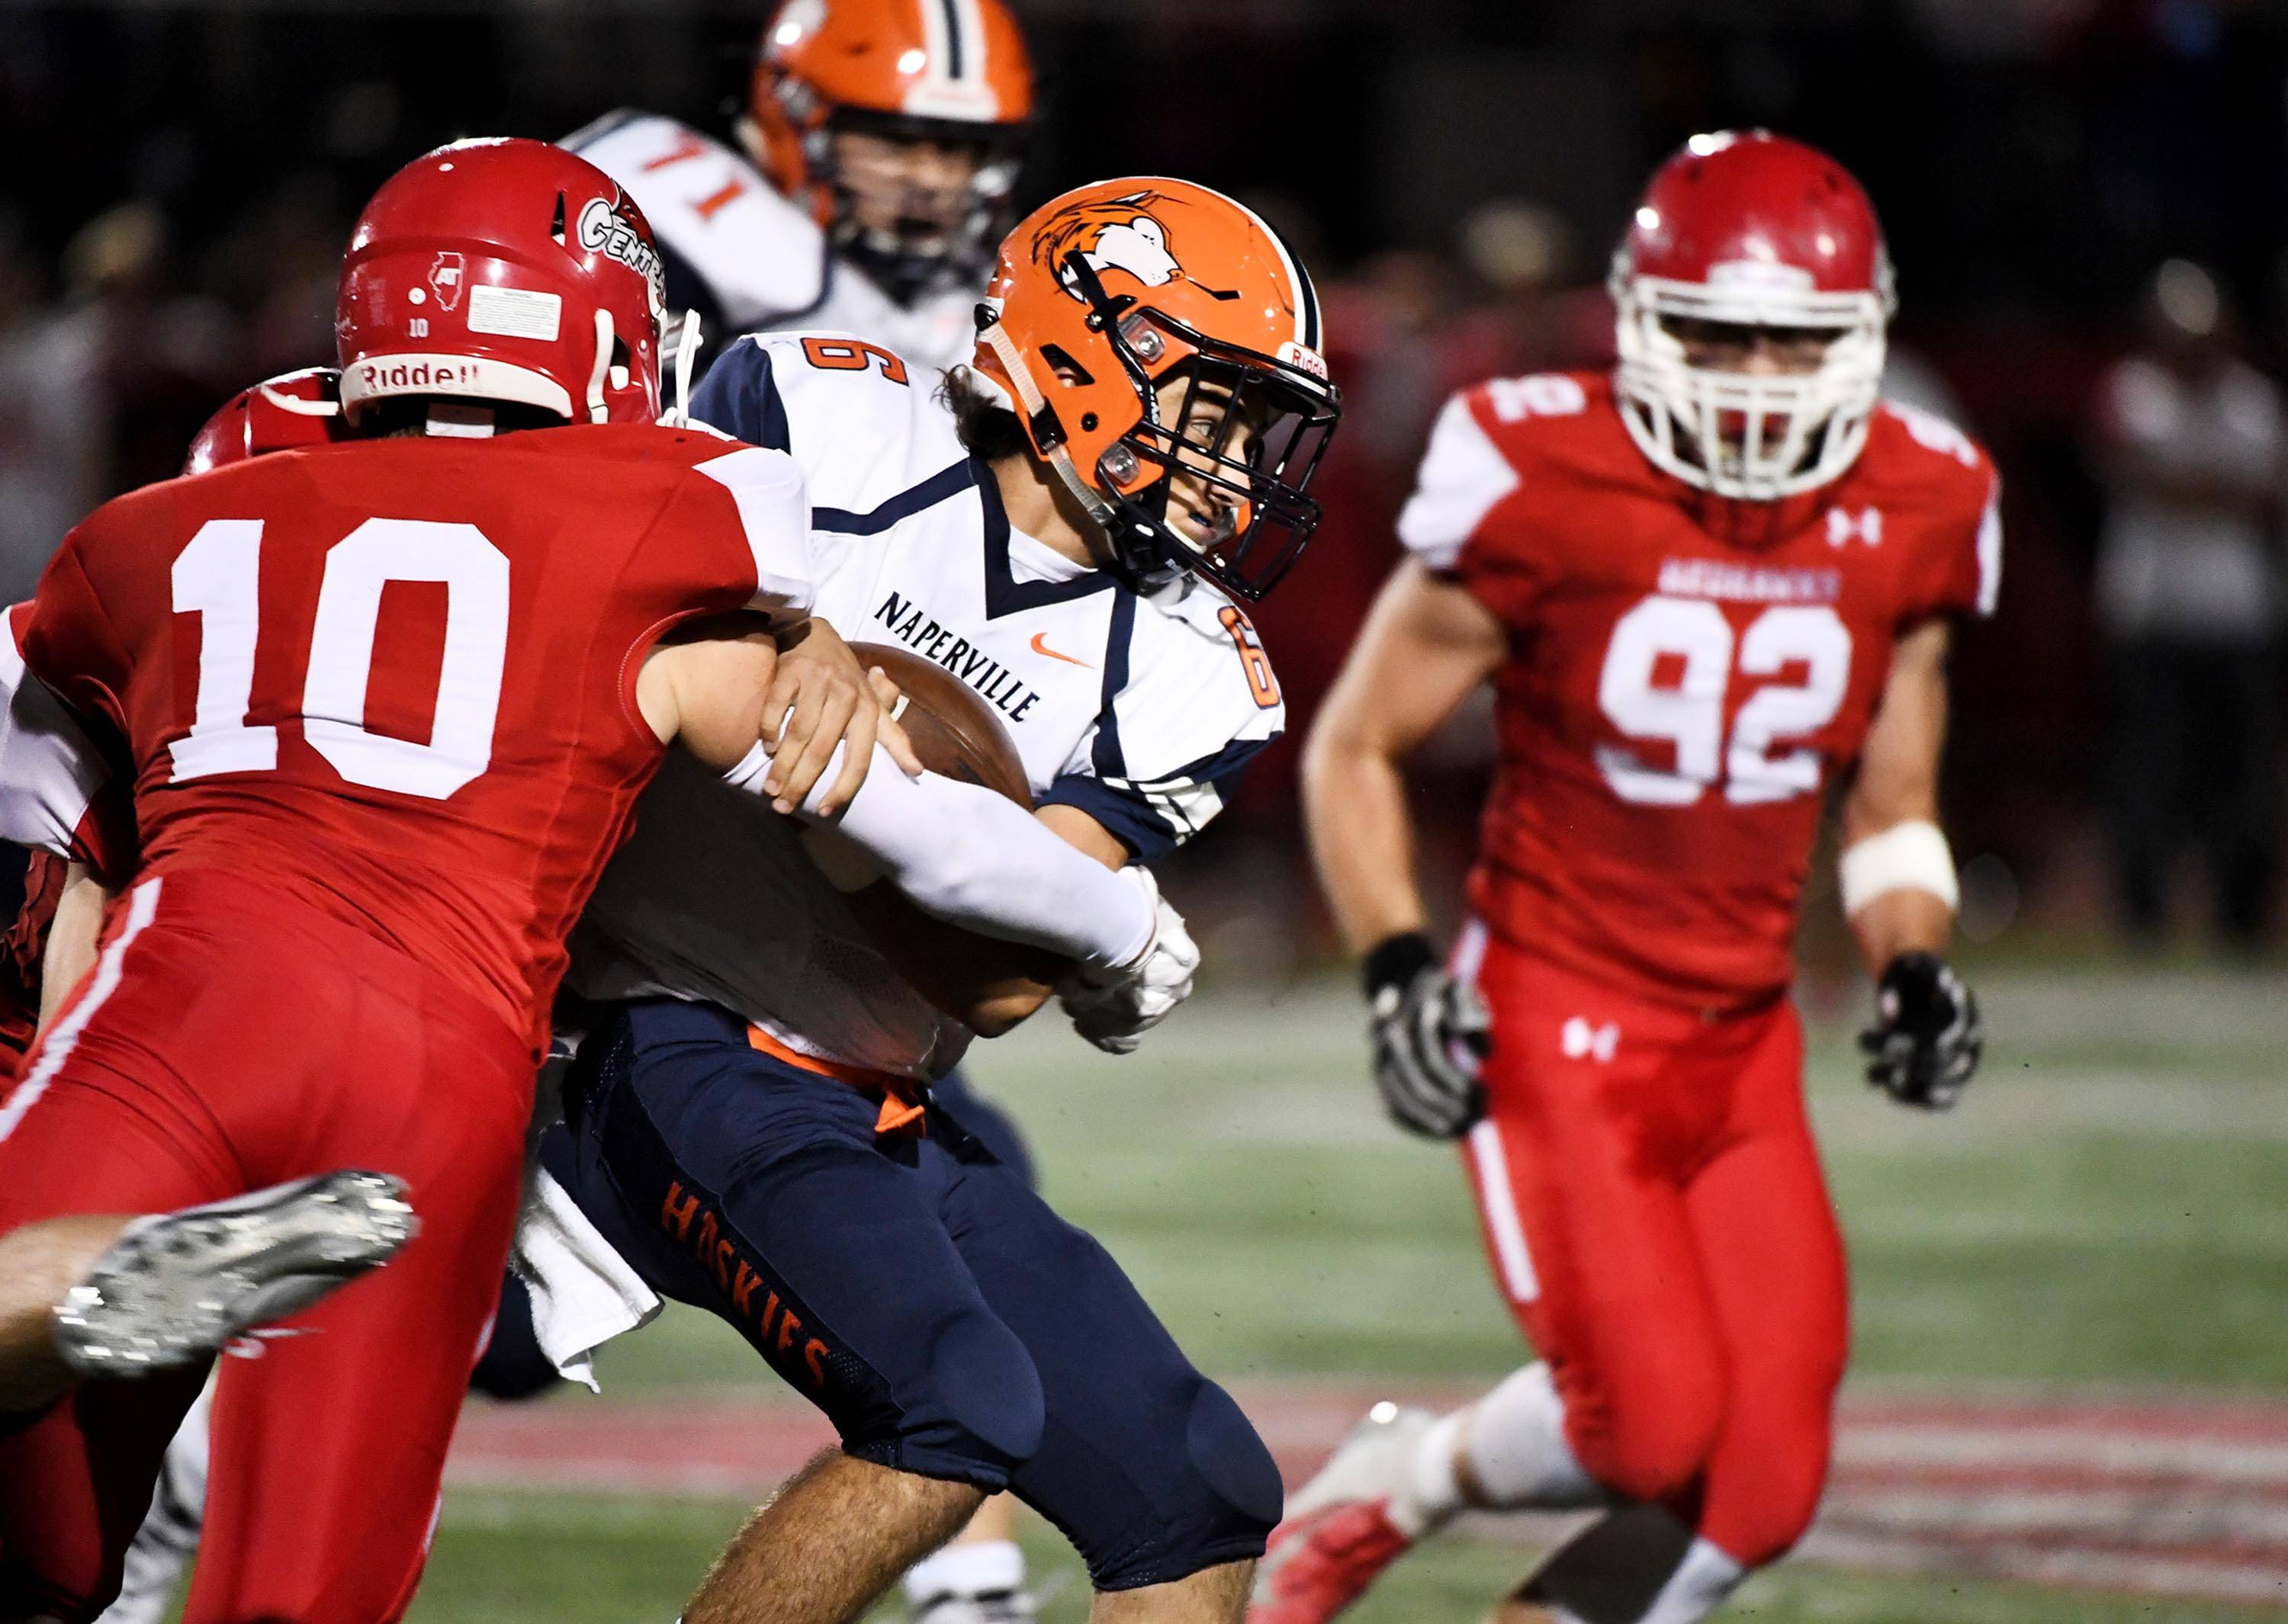 The vote to move to district play in football seems to benefit DuPage Valley Conference teams like Naperville North and Naperville Central.